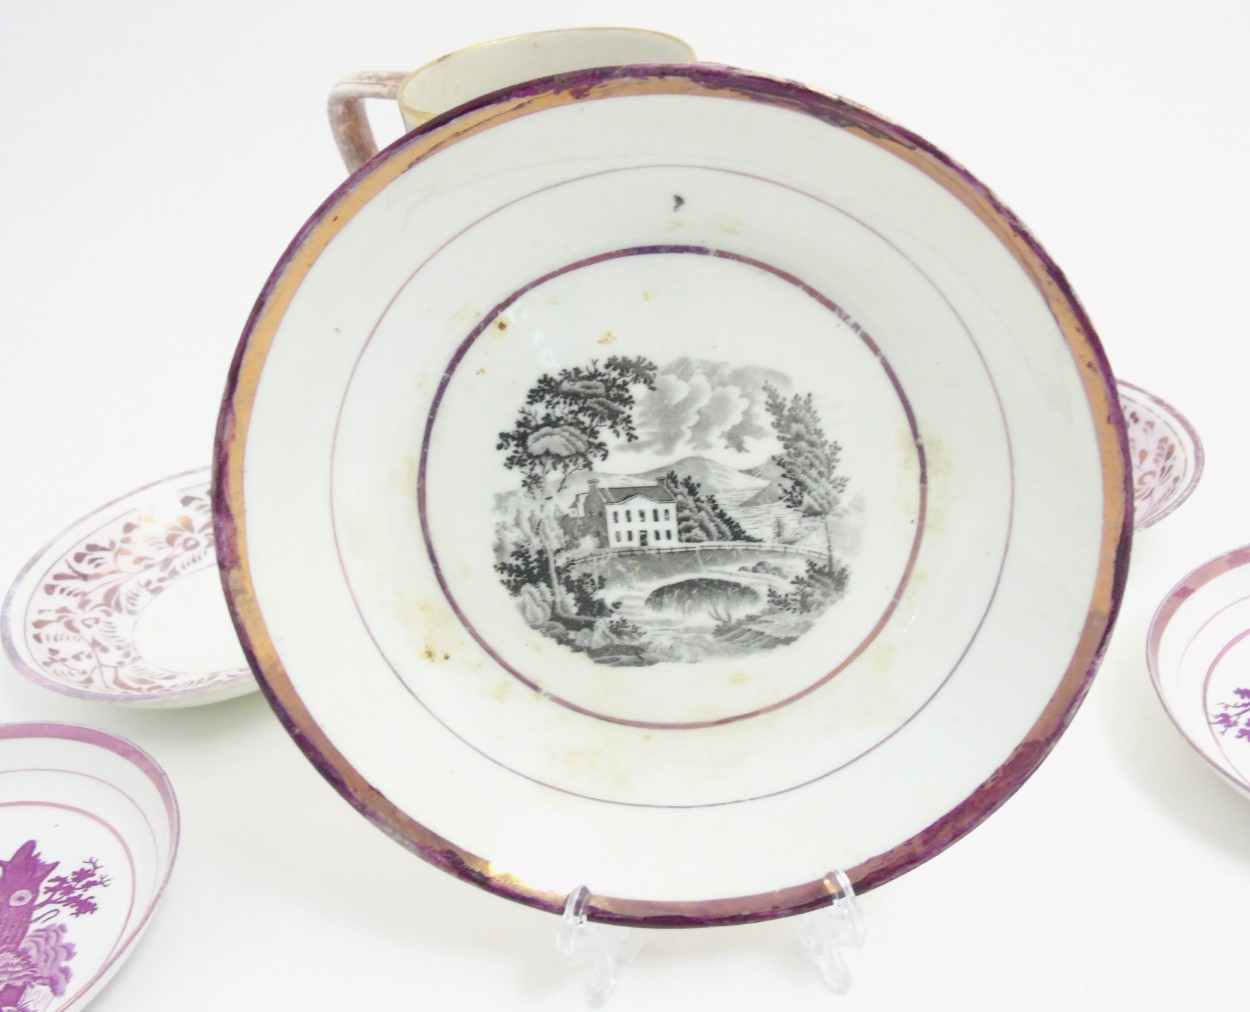 Lot 52 - A quantity of 19thC Sunderland pink lustre items comprising a water jug with marbleized effect